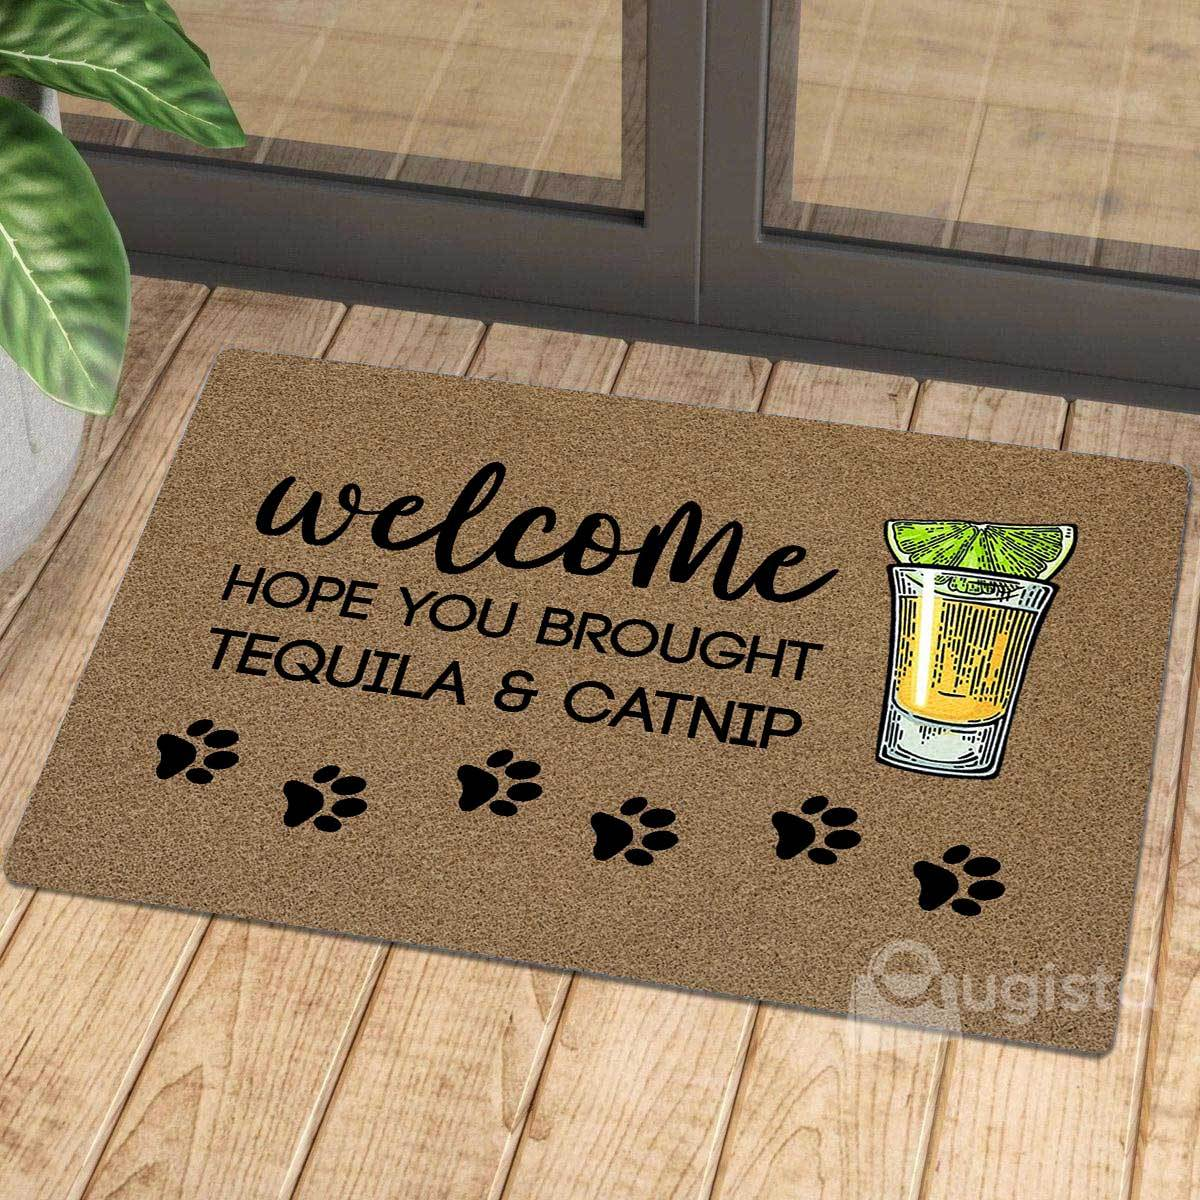 vintage welcome hope you brought tequila and catnip doormat 1 - Copy (2)